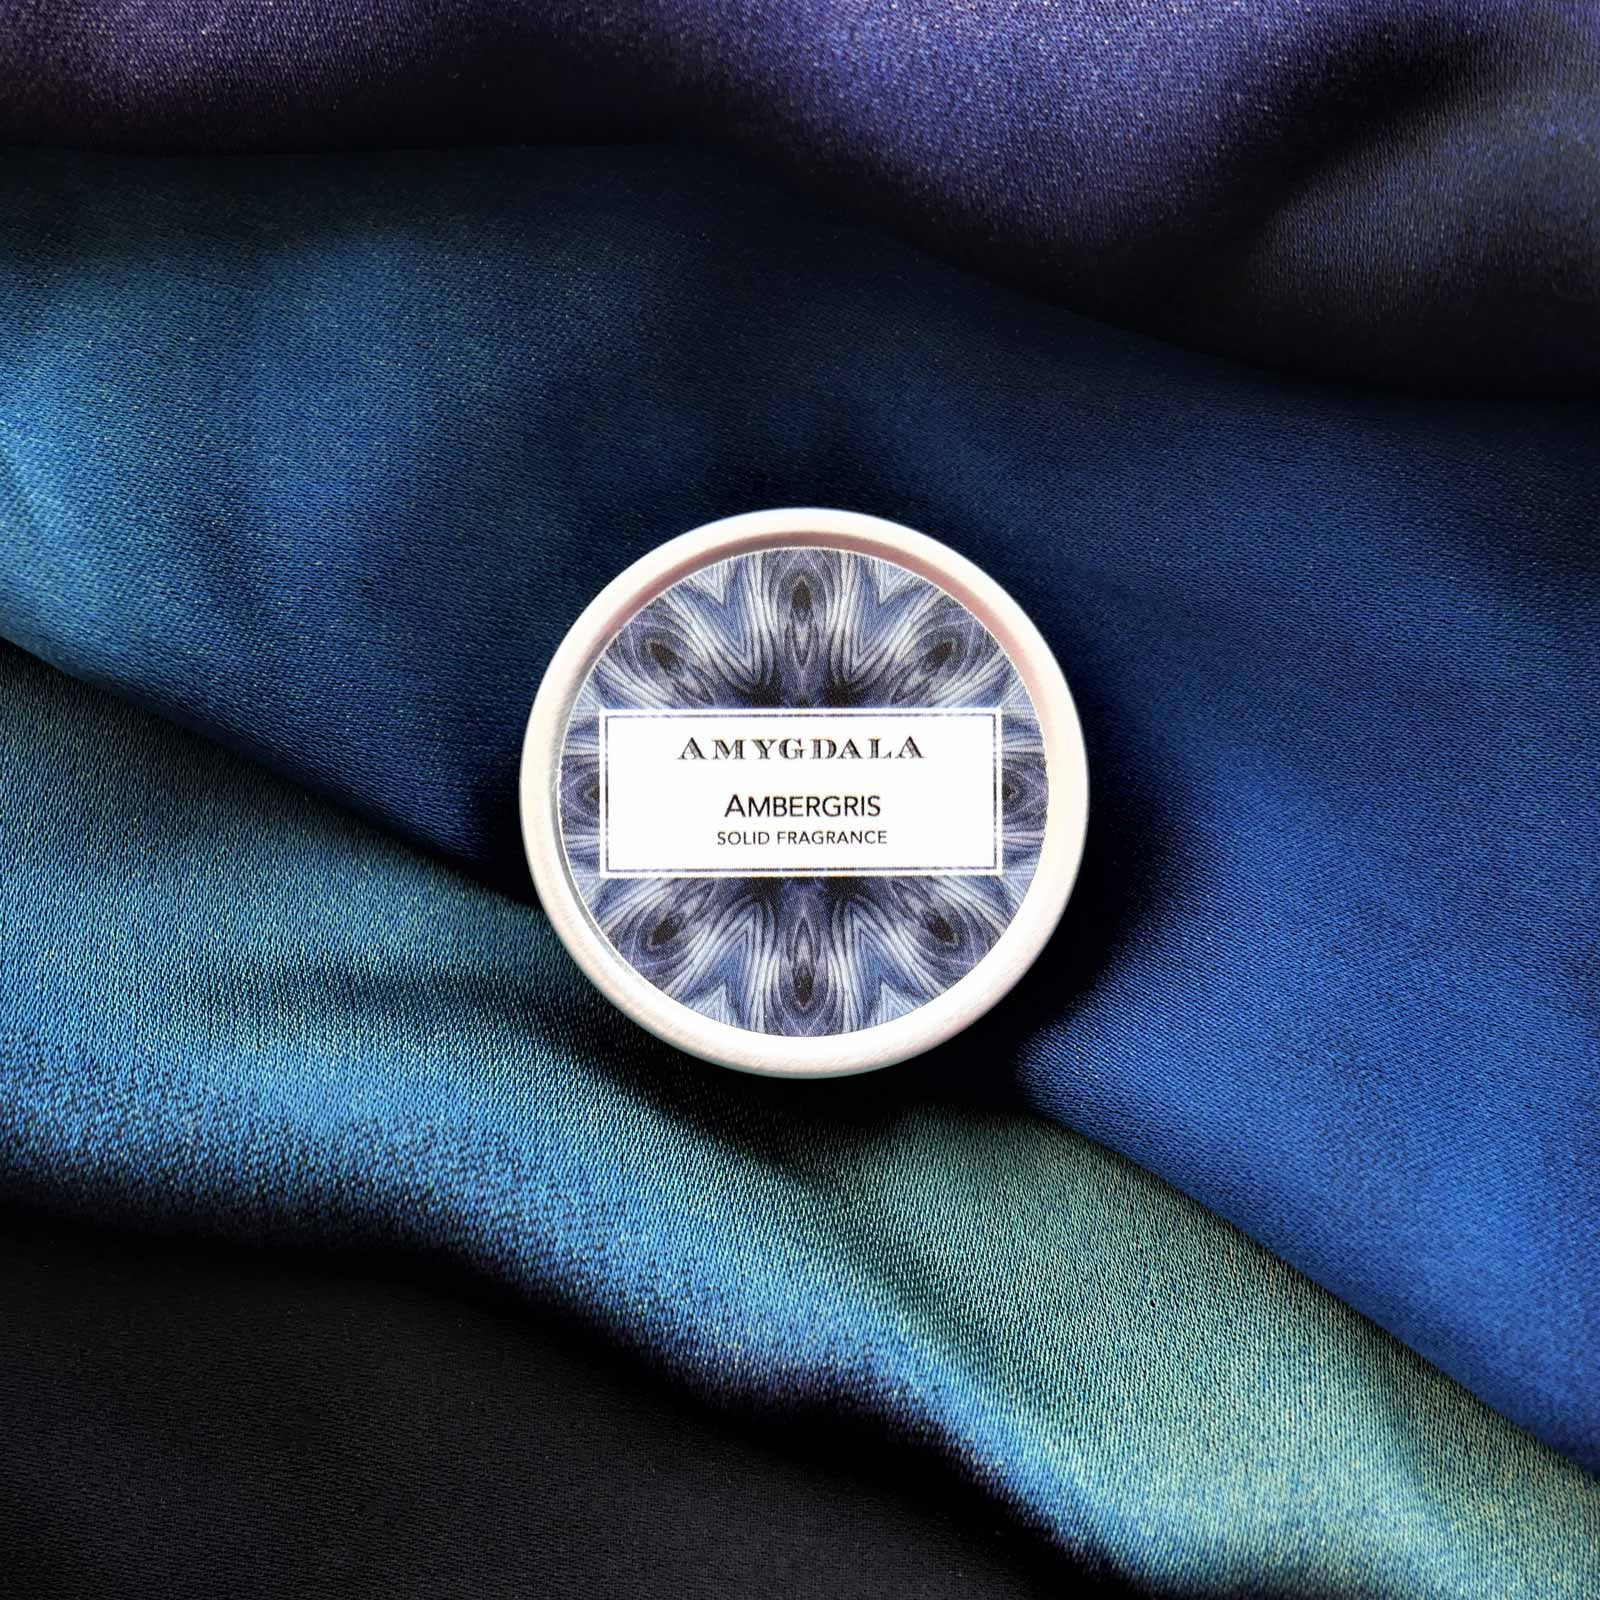 Ambergris Solid Perfume evokes the sea